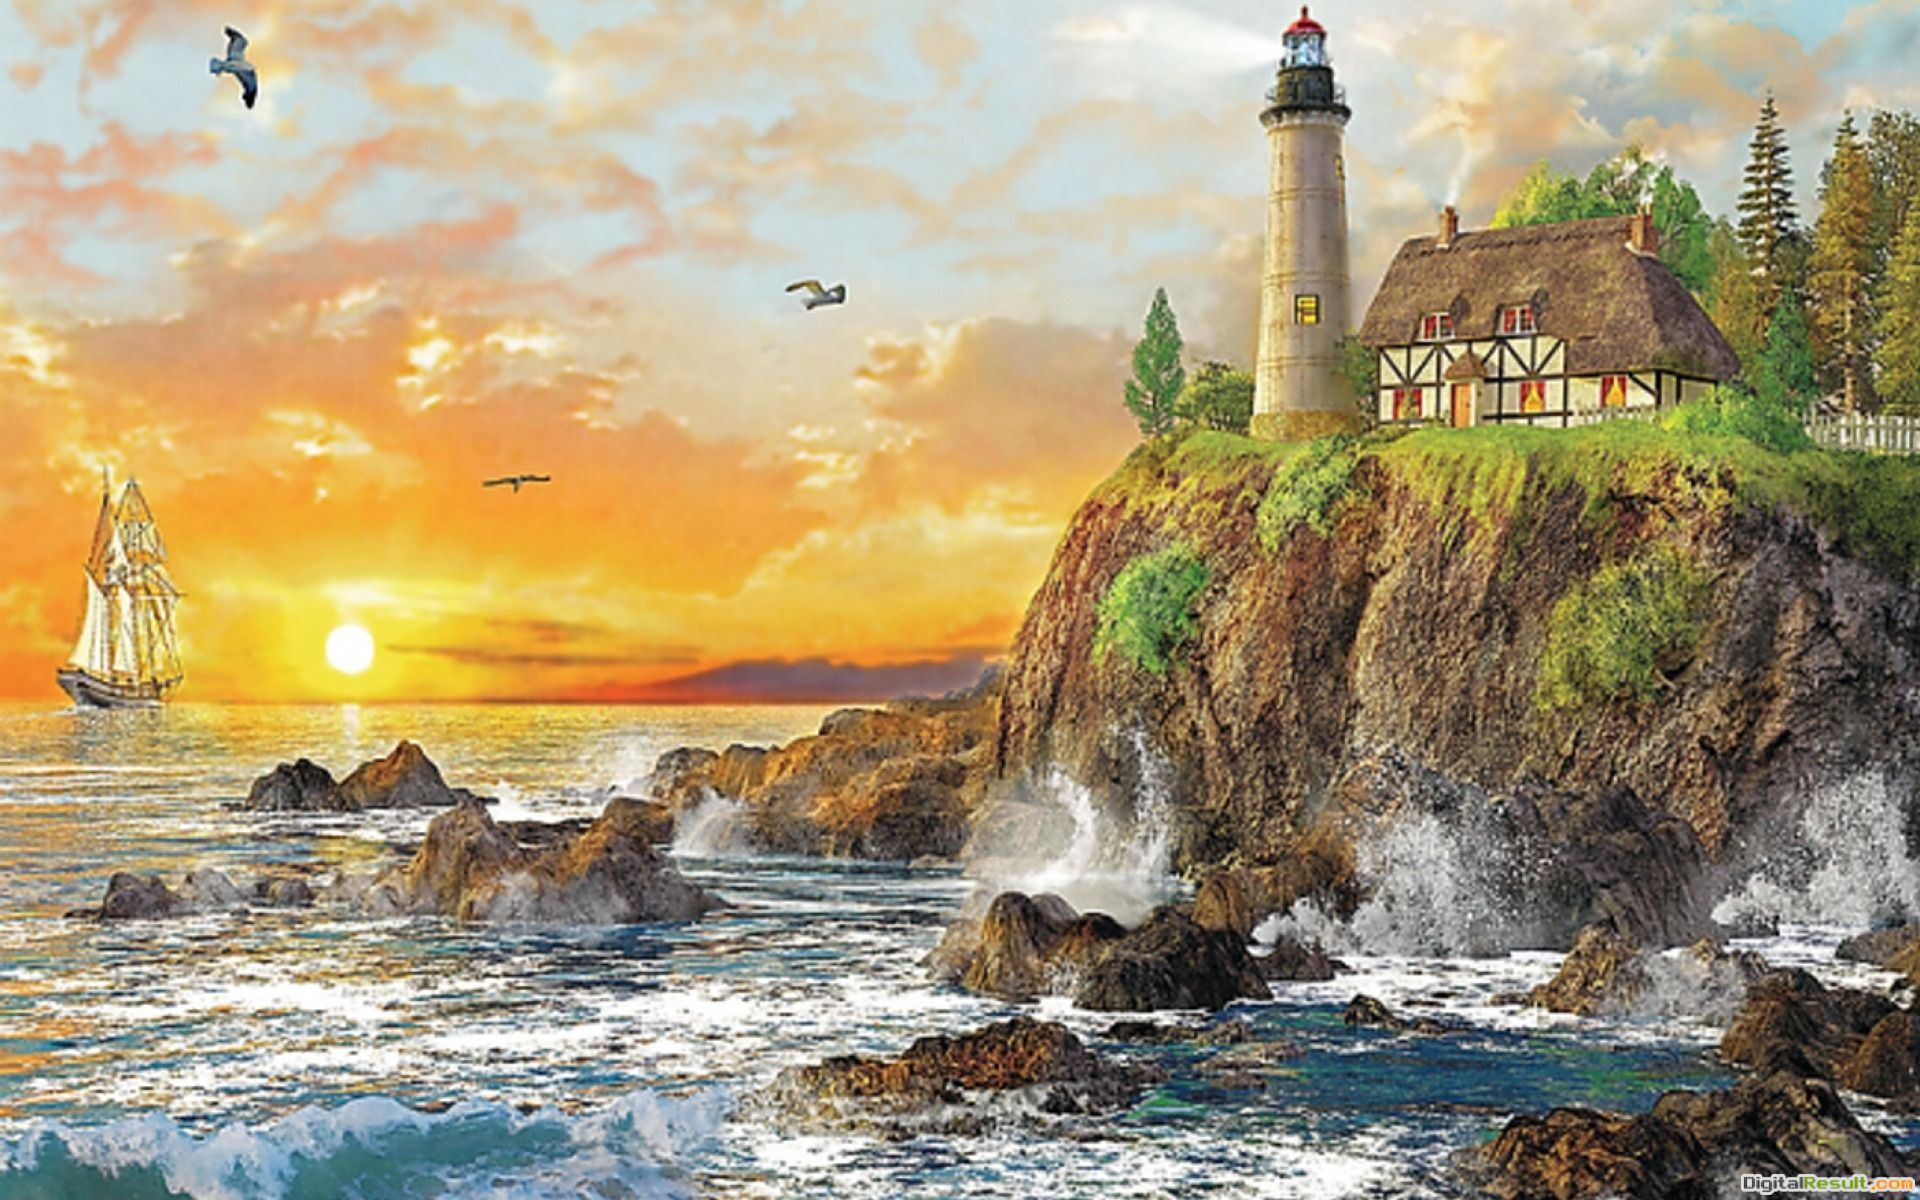 1920x1200 Ocean Cliff Light House Sunset desktop PC and Mac wallpaper 942